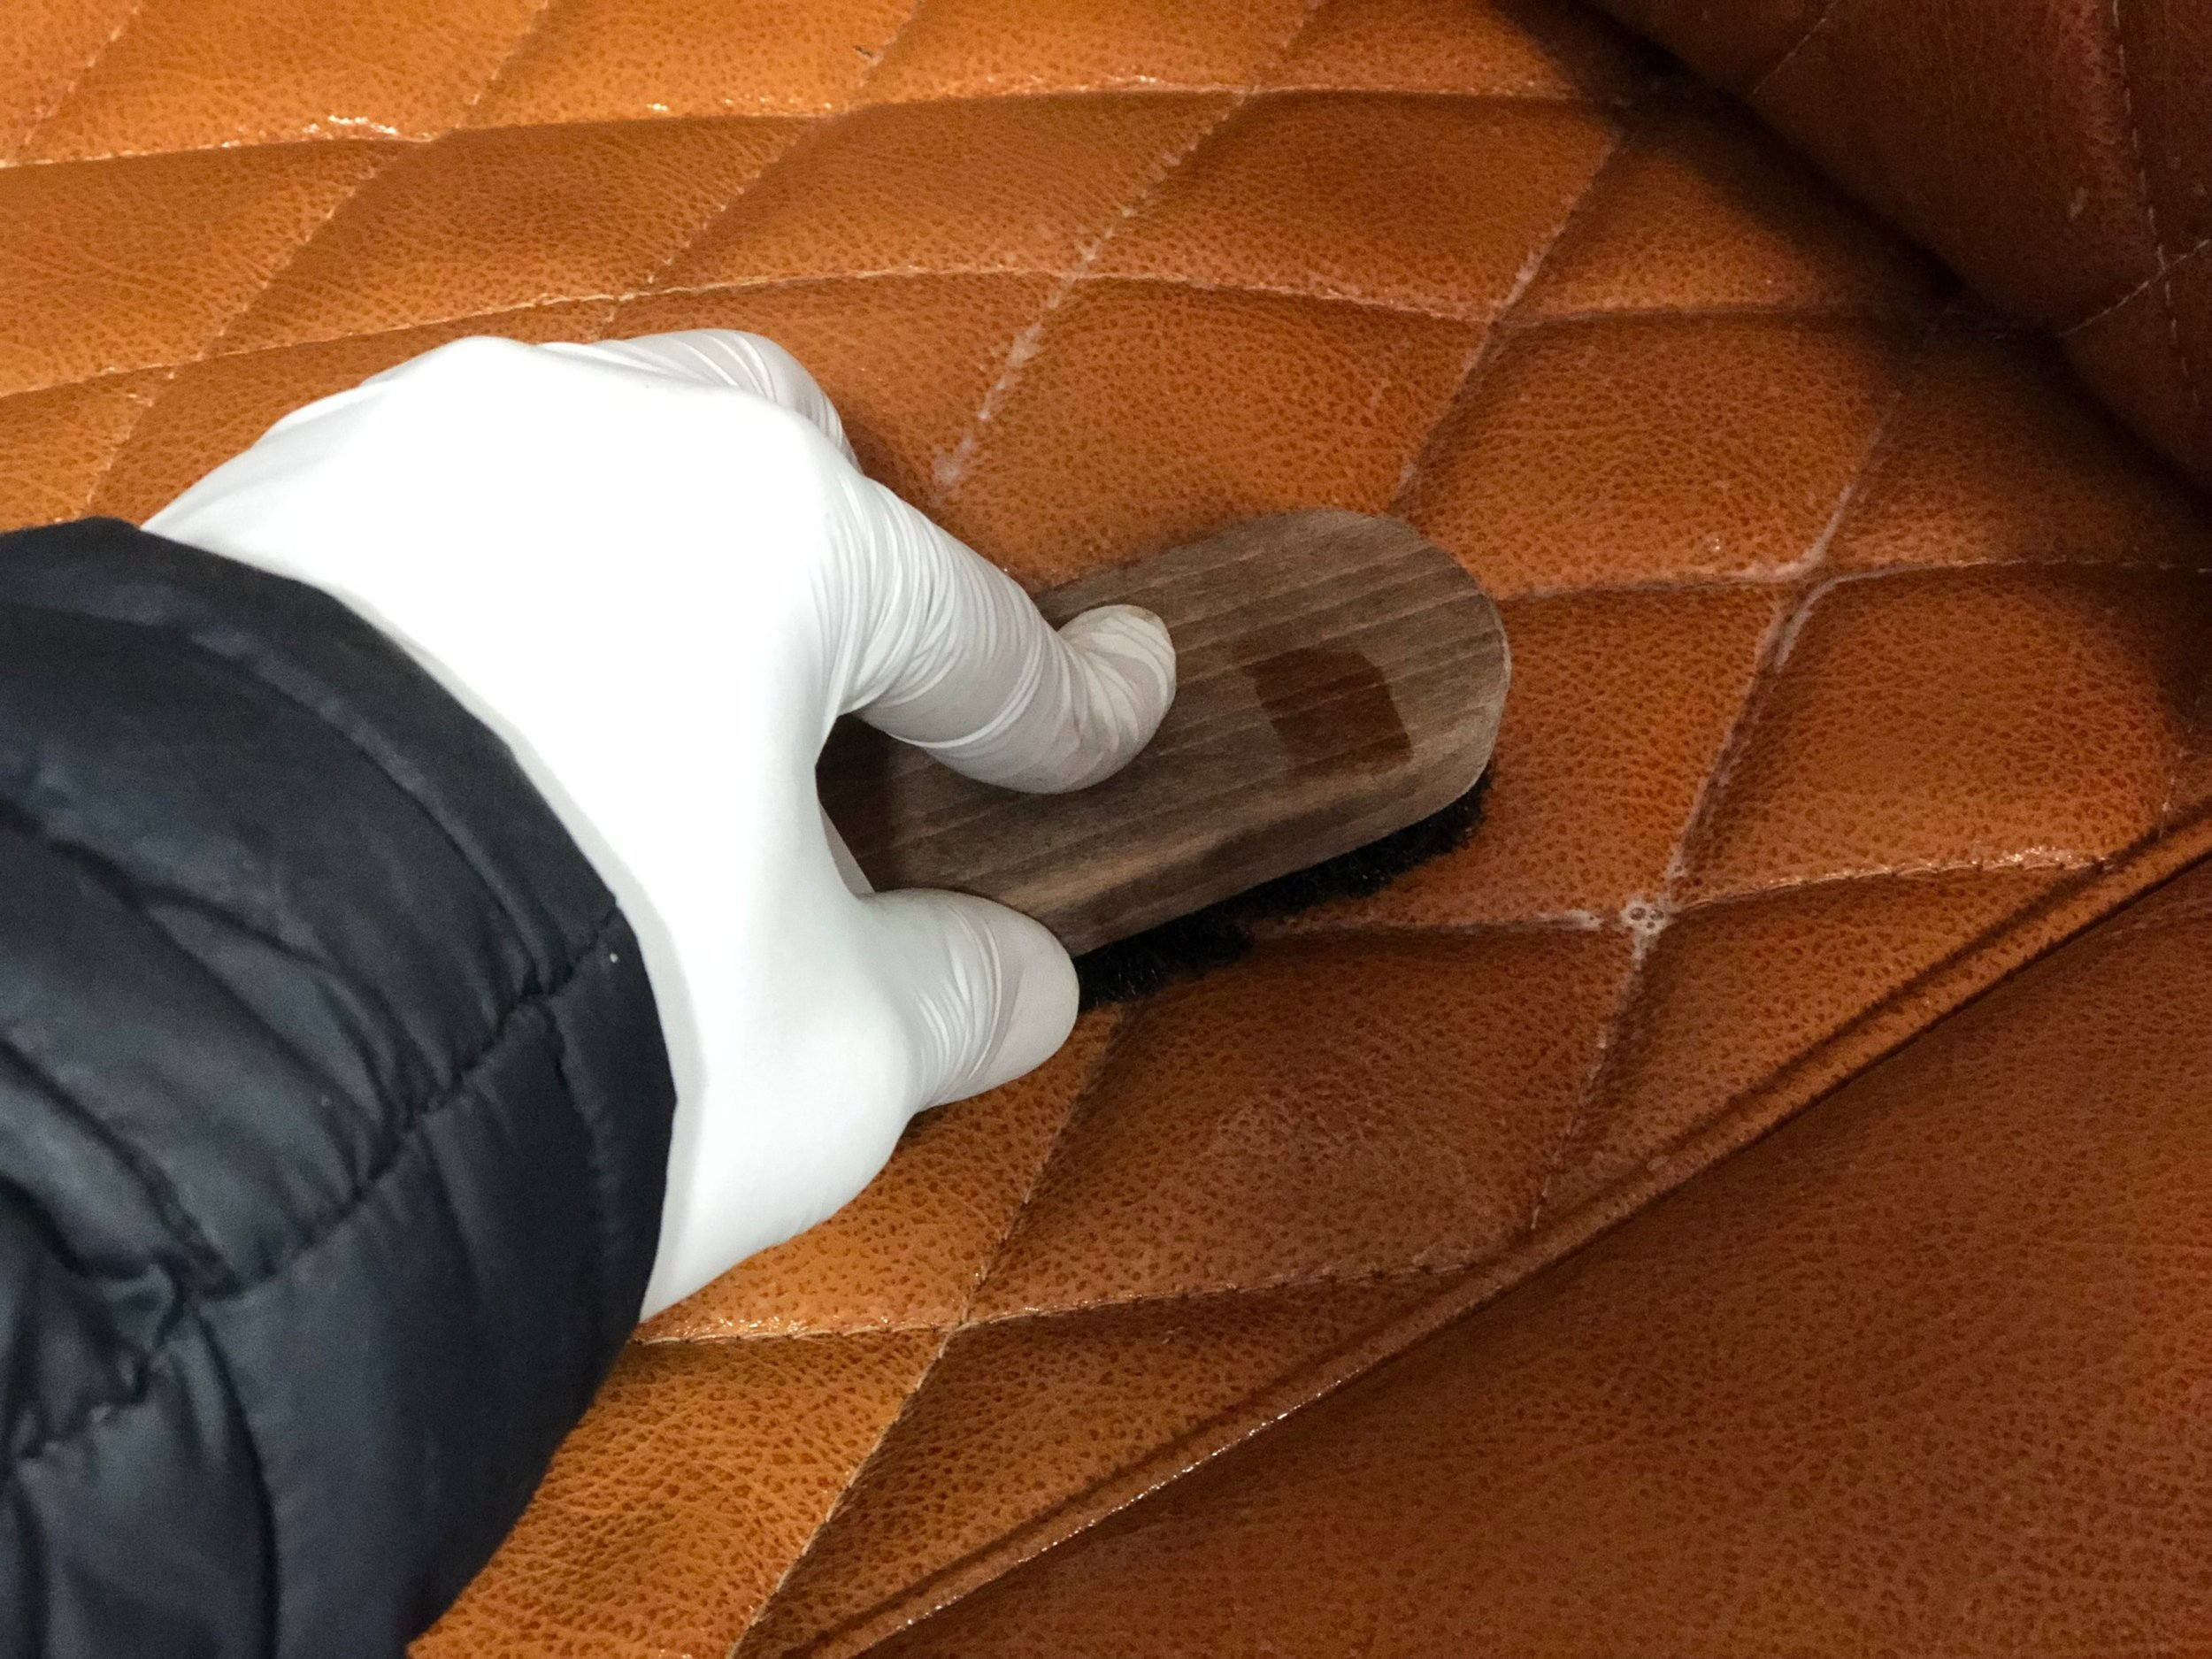 leather+cleaning+on+car+seat+%282%29.jpg